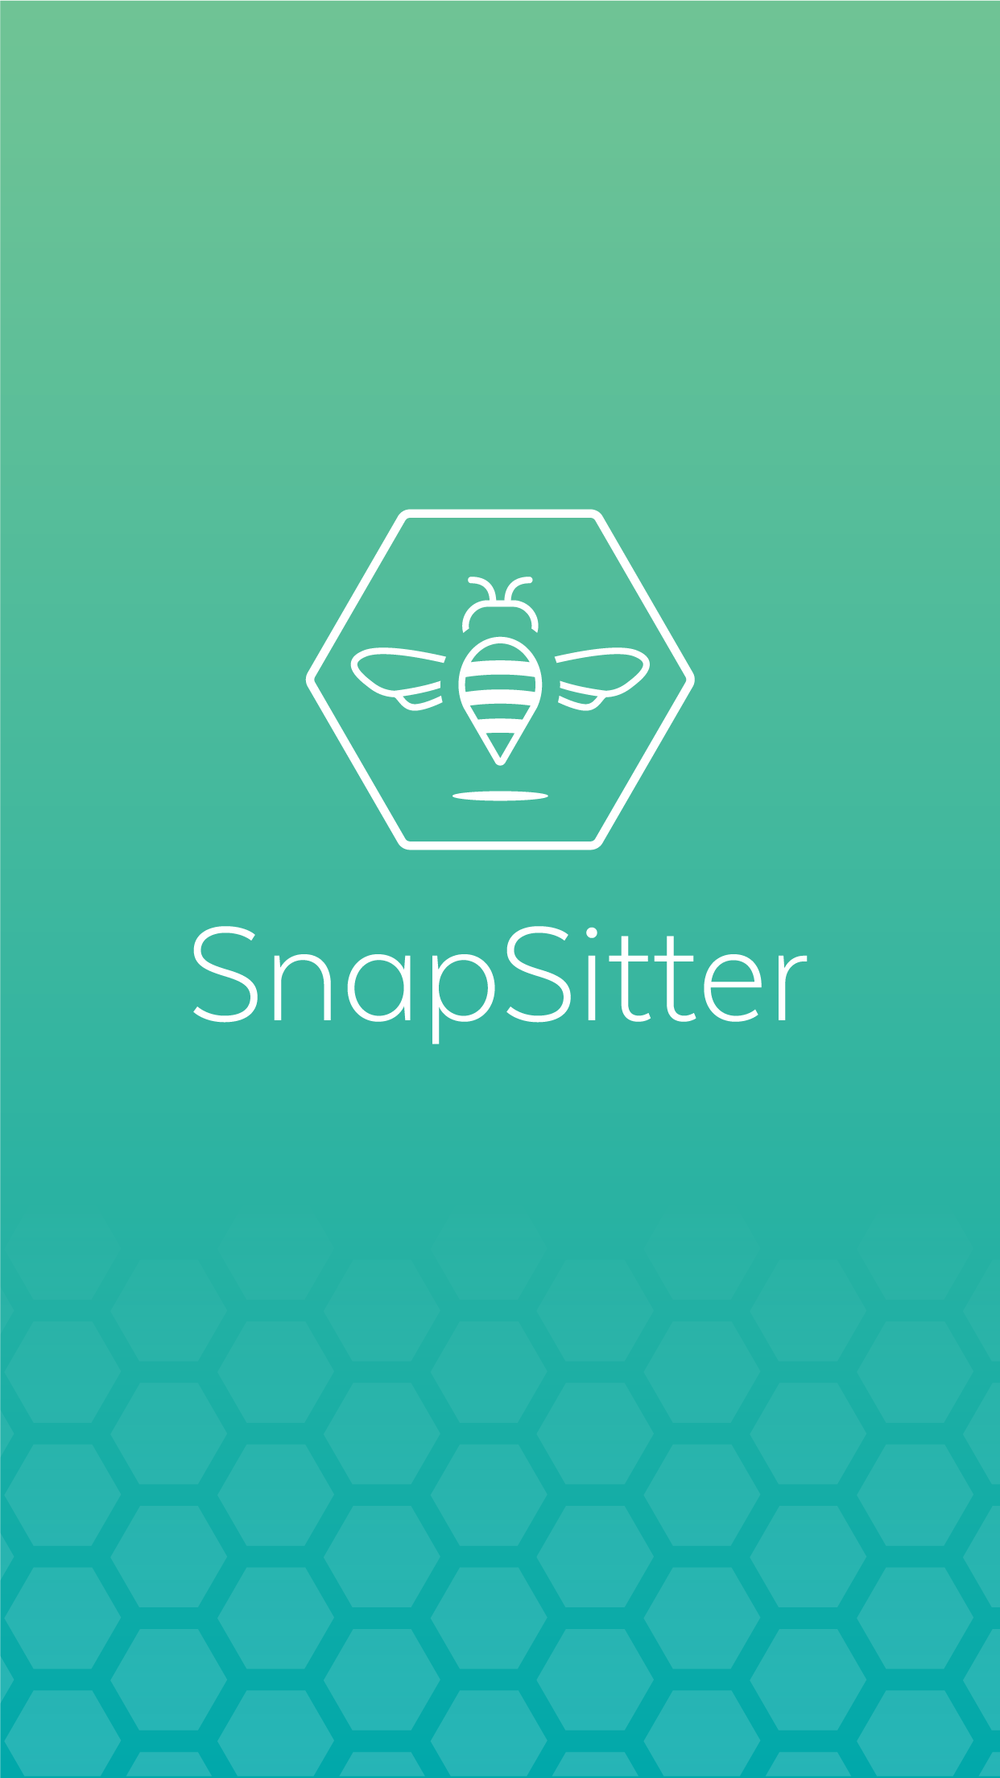 SnapSitter_General_01_MainLogin.png